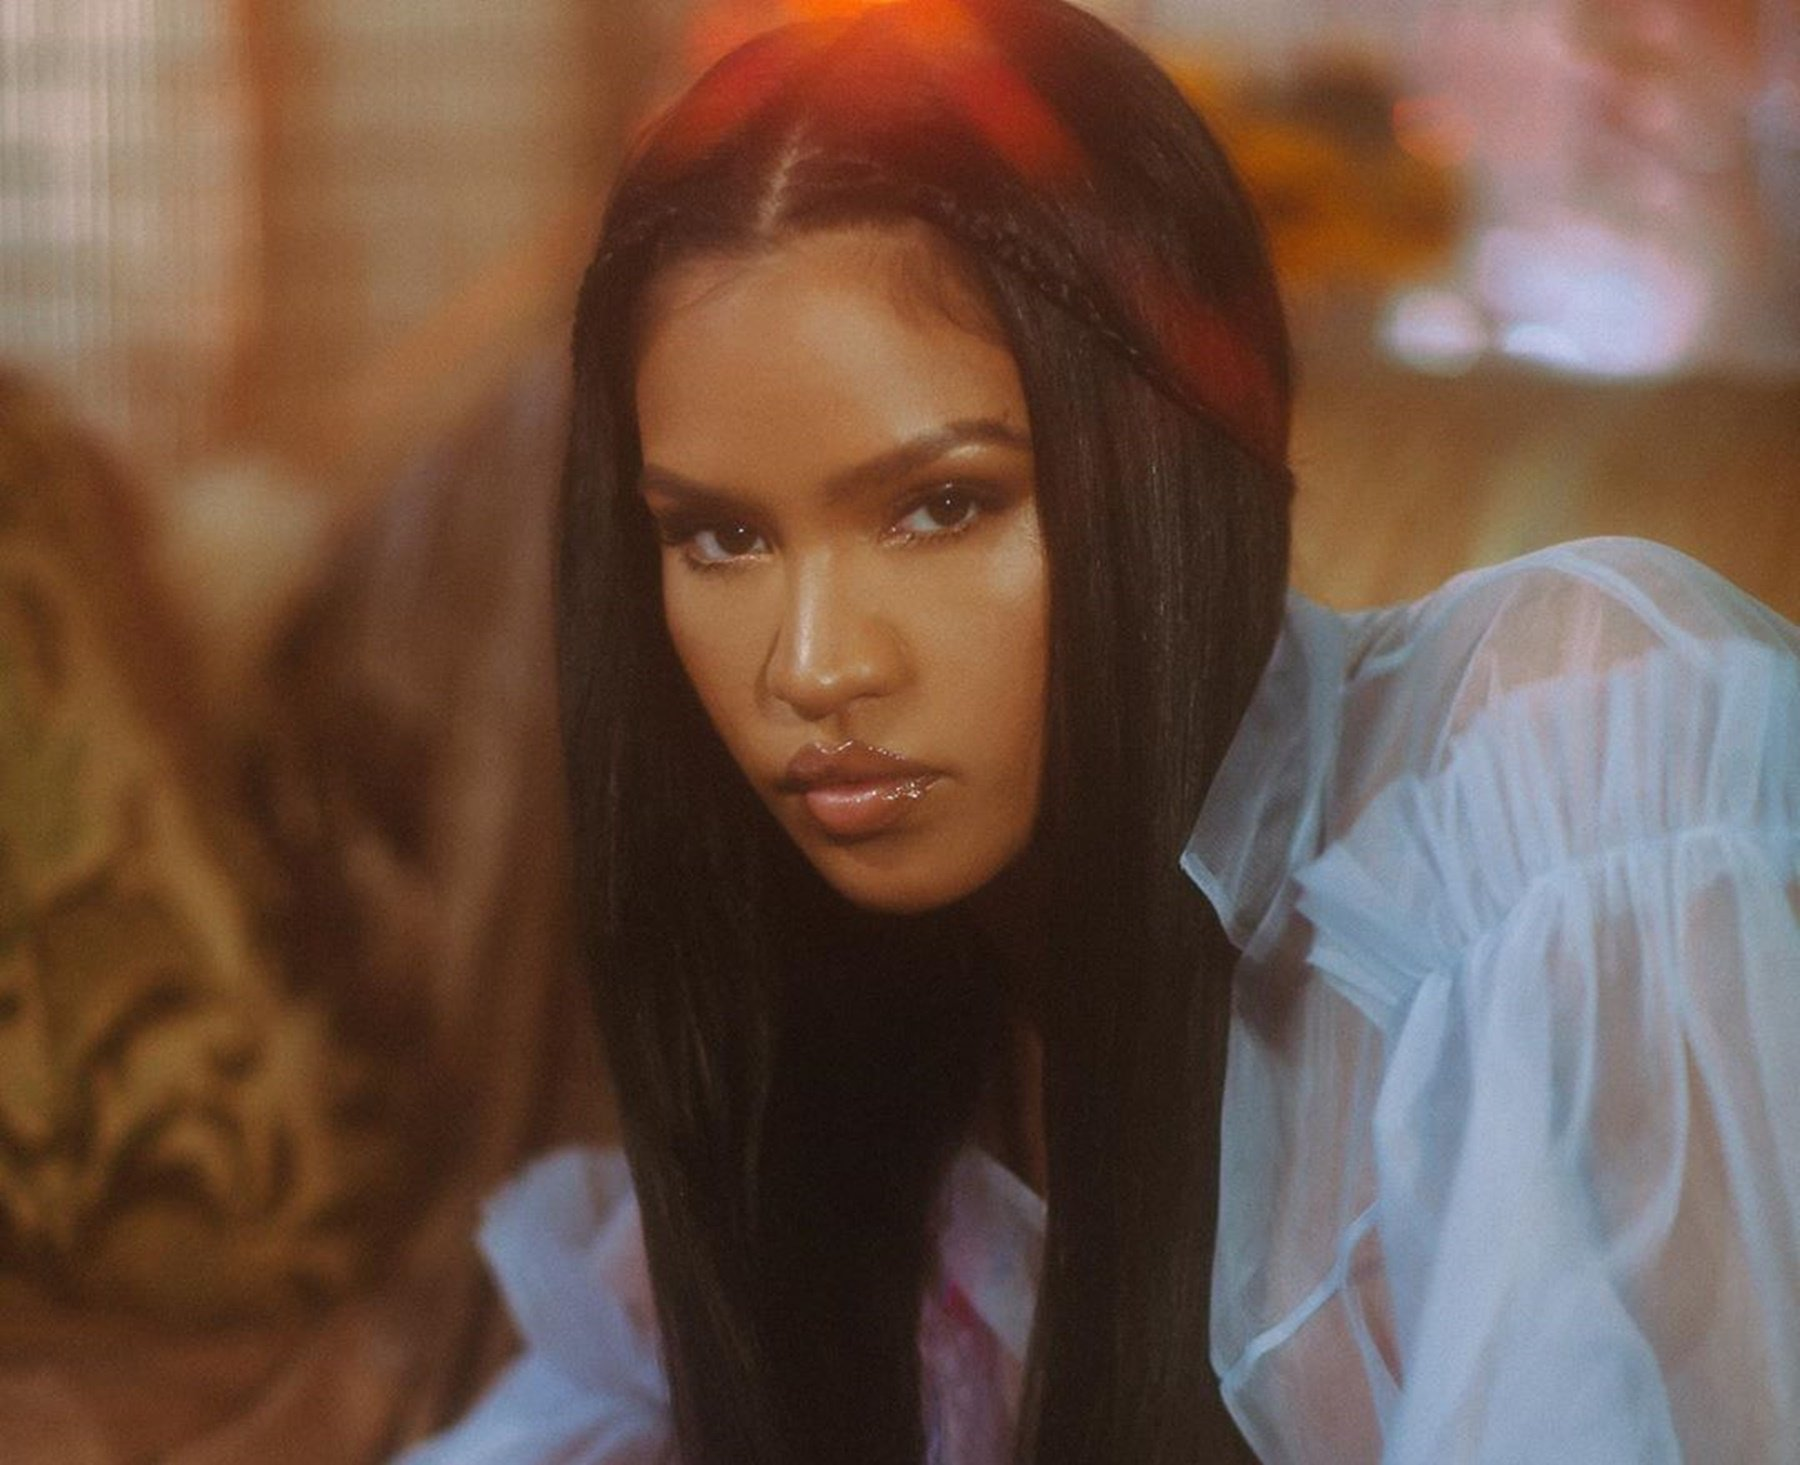 Cassie And Ciara Become Positive Examples For All The Women: 'Let Them Be A Lesson For All Of Us'